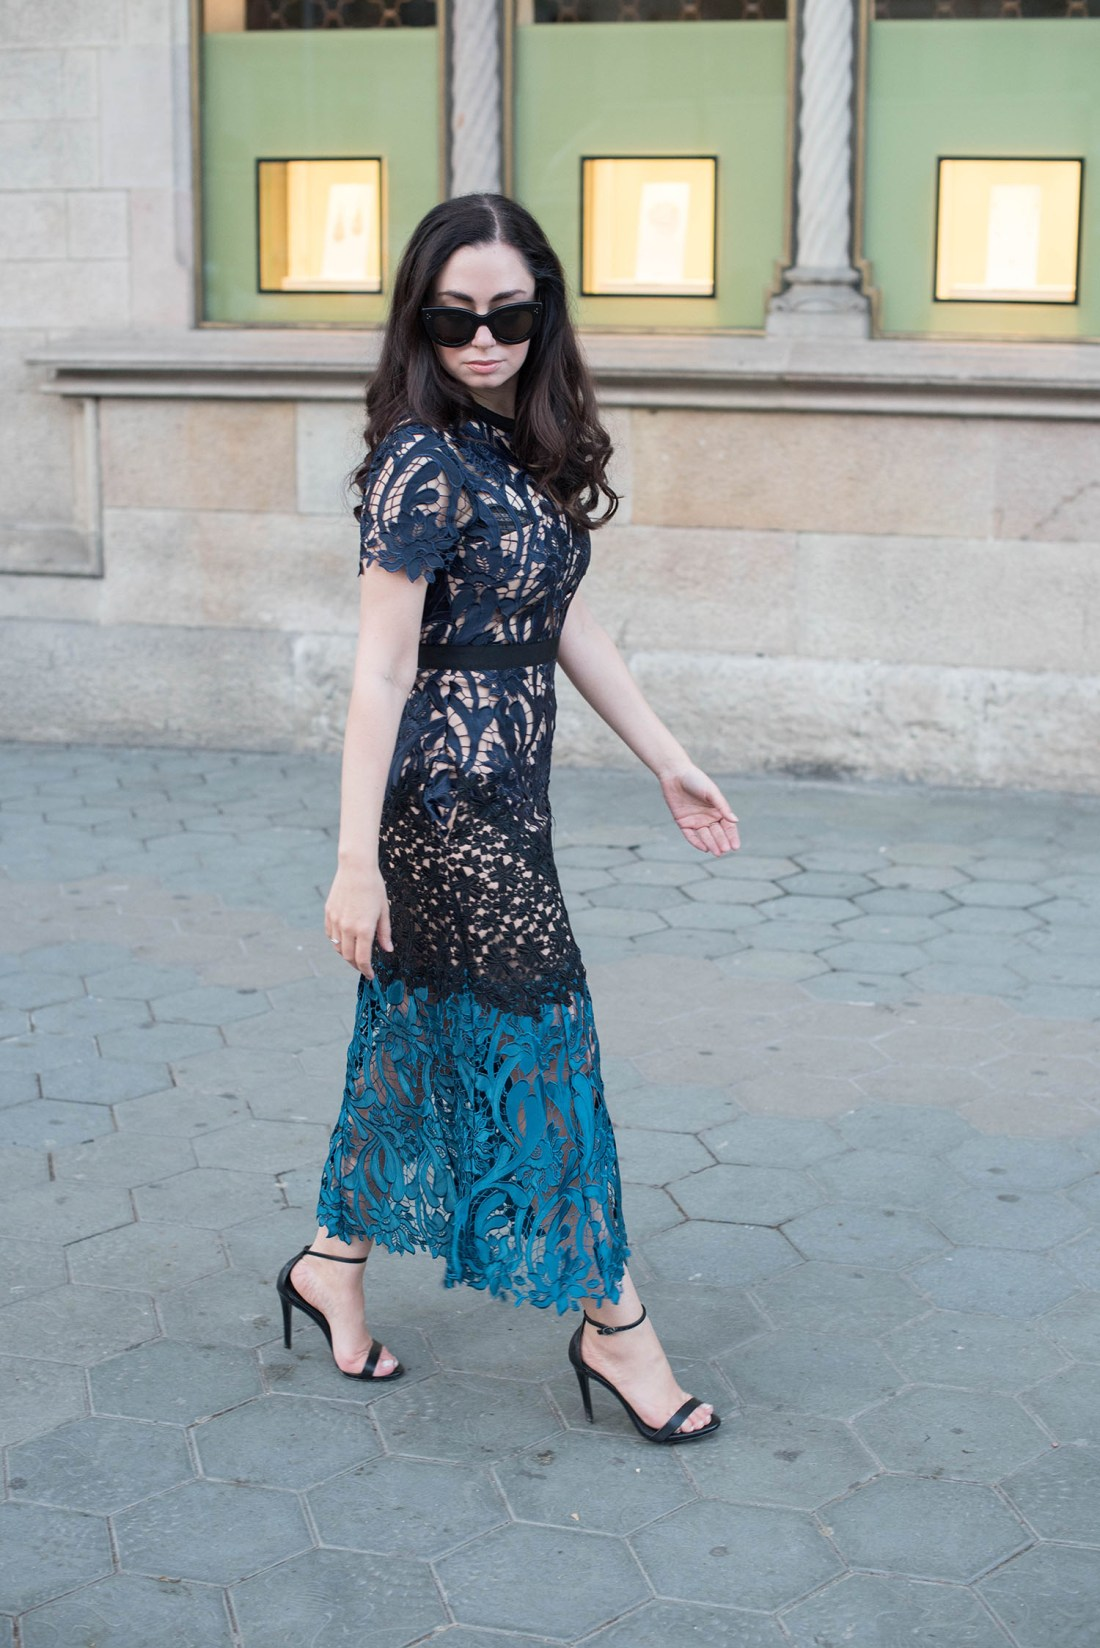 Fashion blogger Cee Fardoe of Coco & Vera wears a Self-Portrait dress in Barcelona